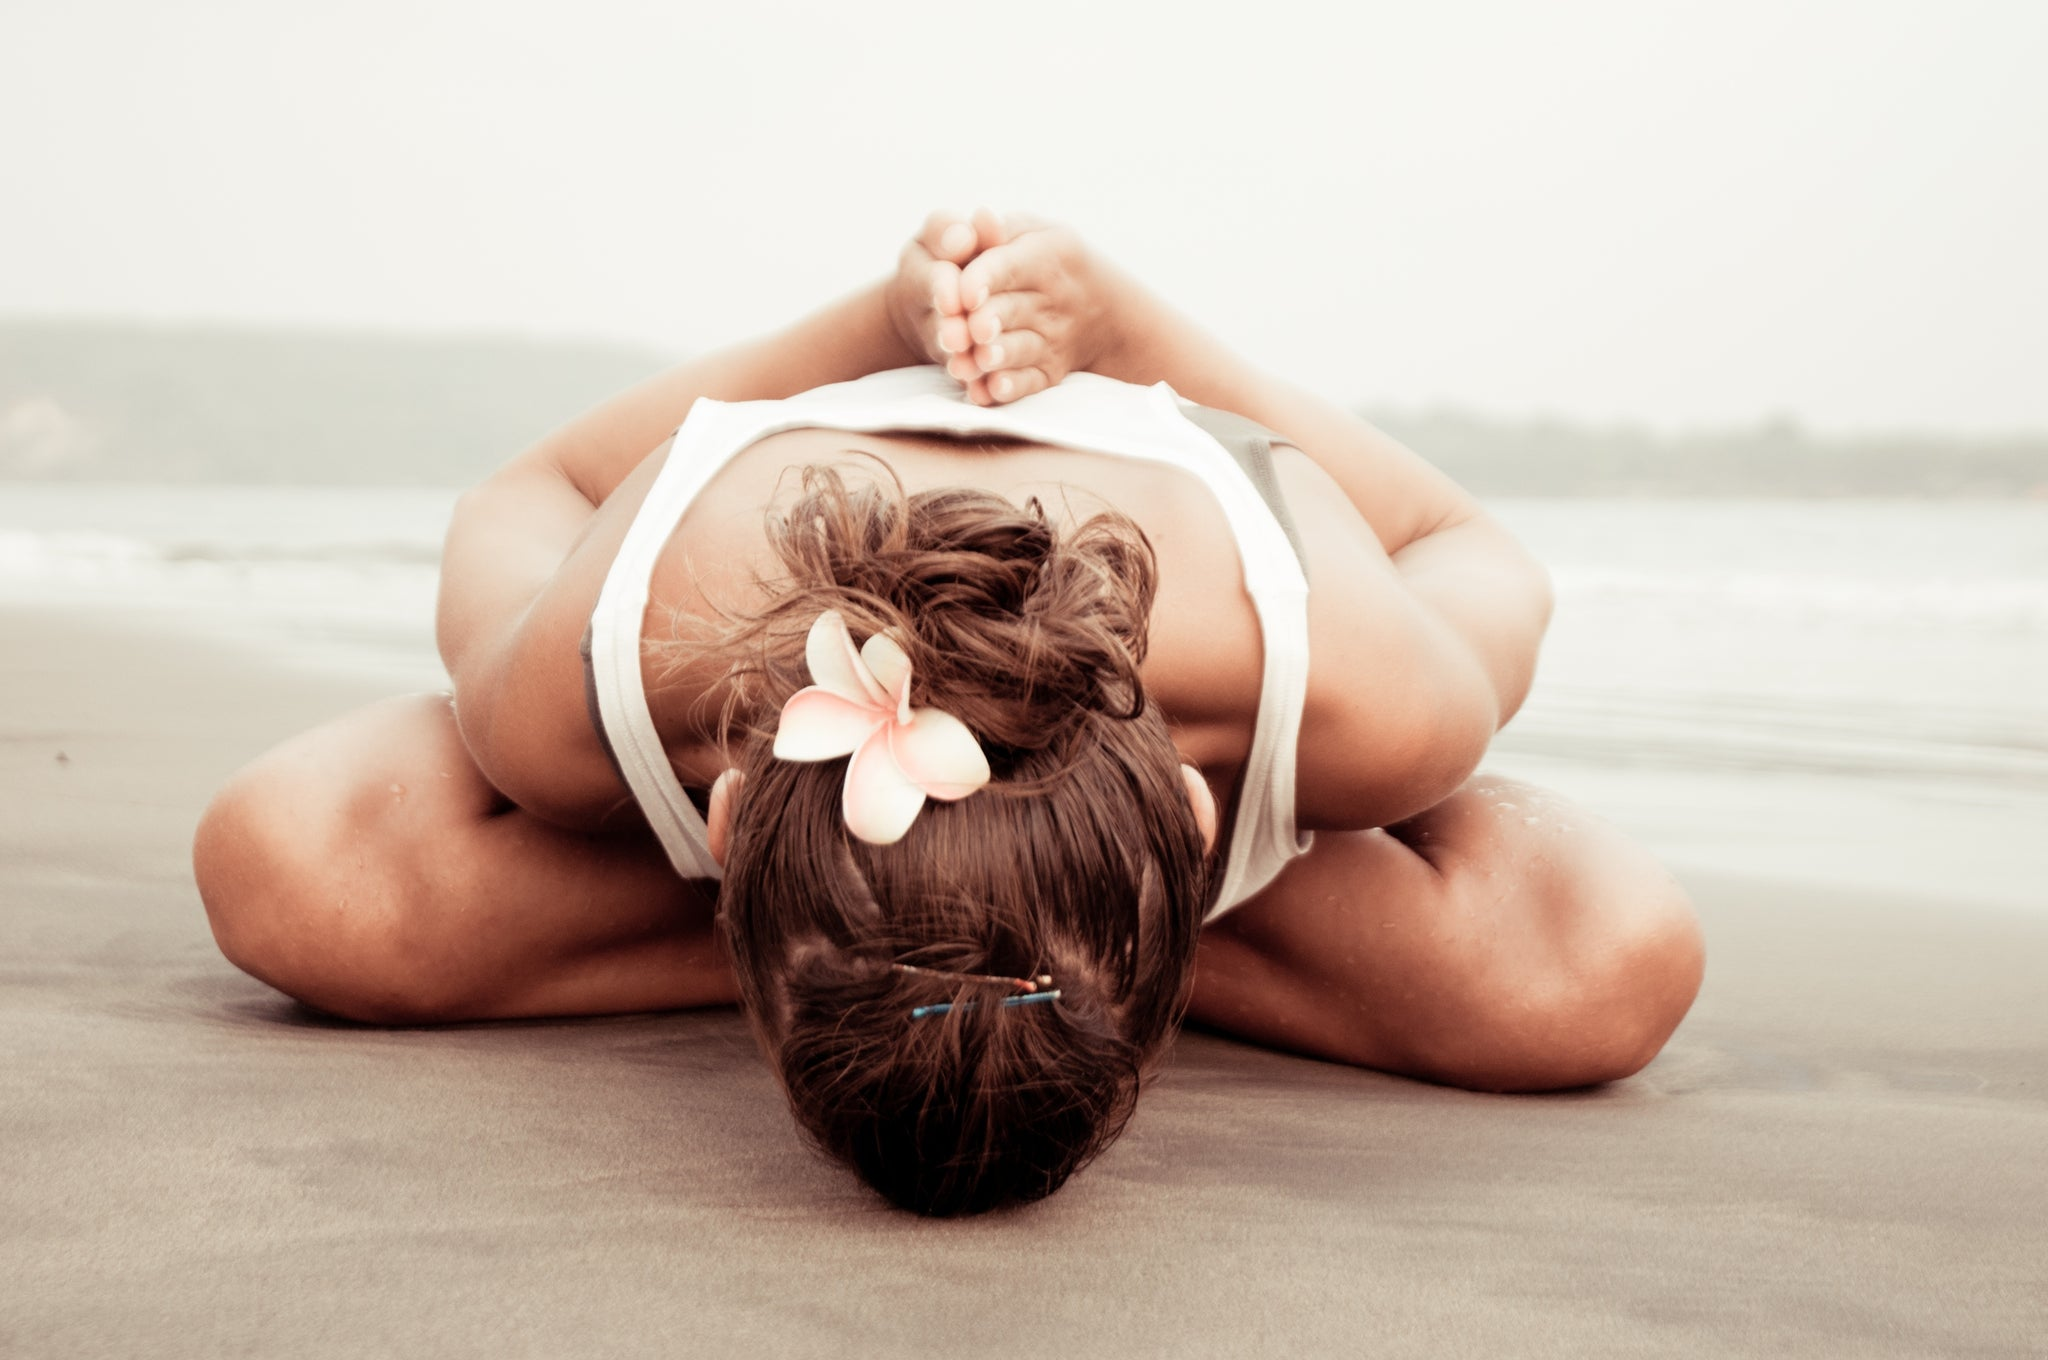 Yoga Poses for Pain Management – Restorative Yoga